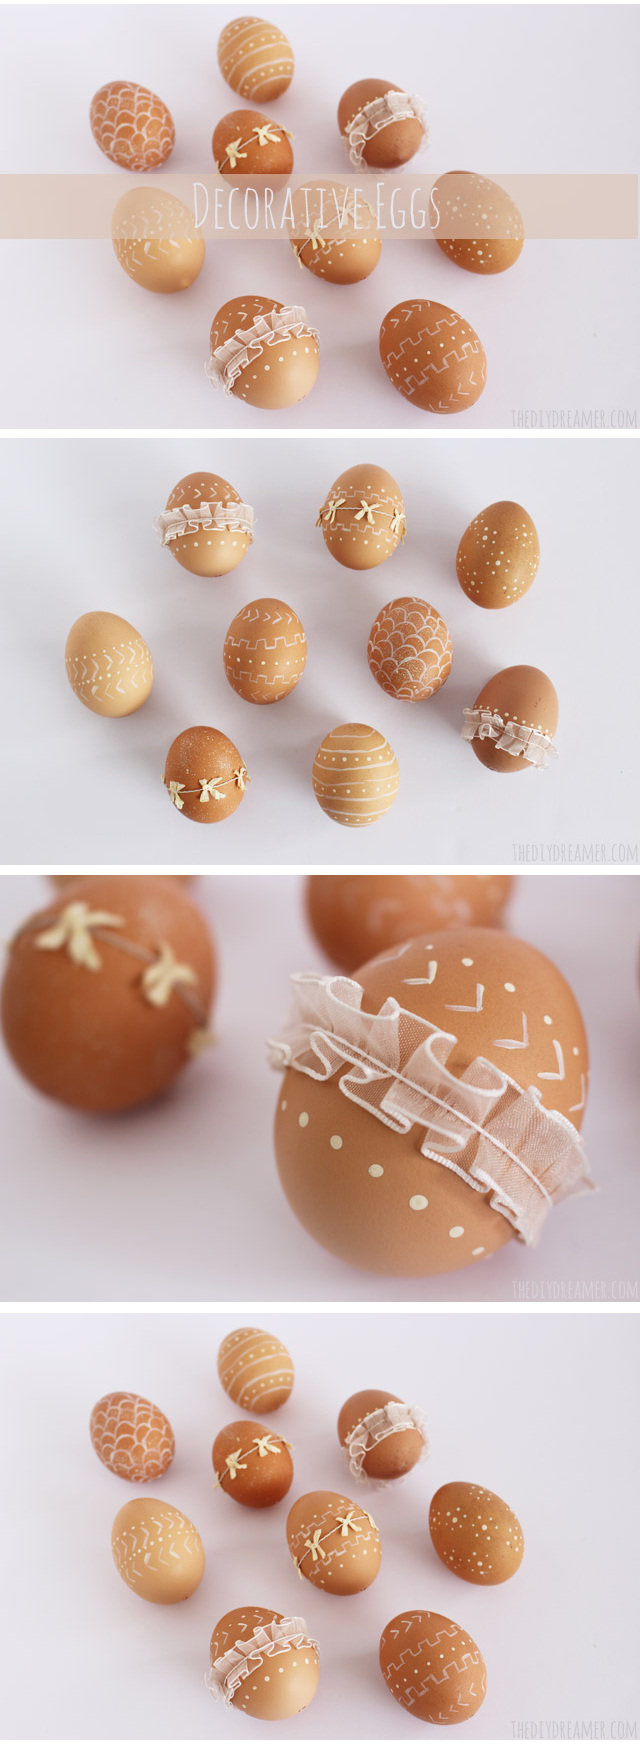 Decorative Eggs - Trendy Easter Eggs decorated with paint and ribbon. Rustic Easter idea!